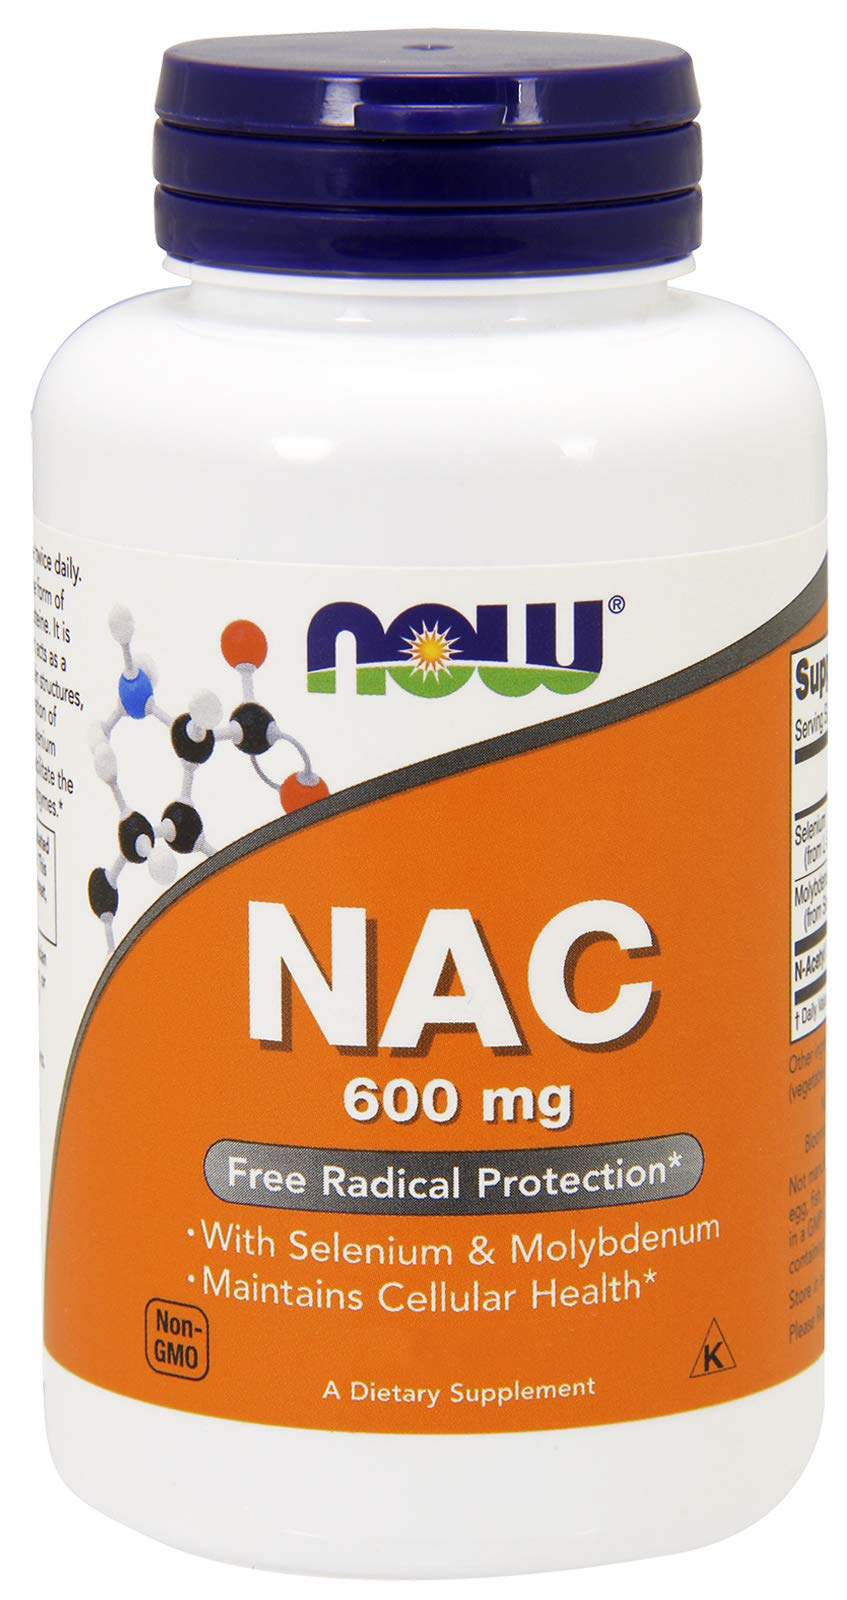 Now NAC 600 mg, 400 Veg Capsules - N-Acetyl-Cysteine Enhanced with Selenium & Molybdenum